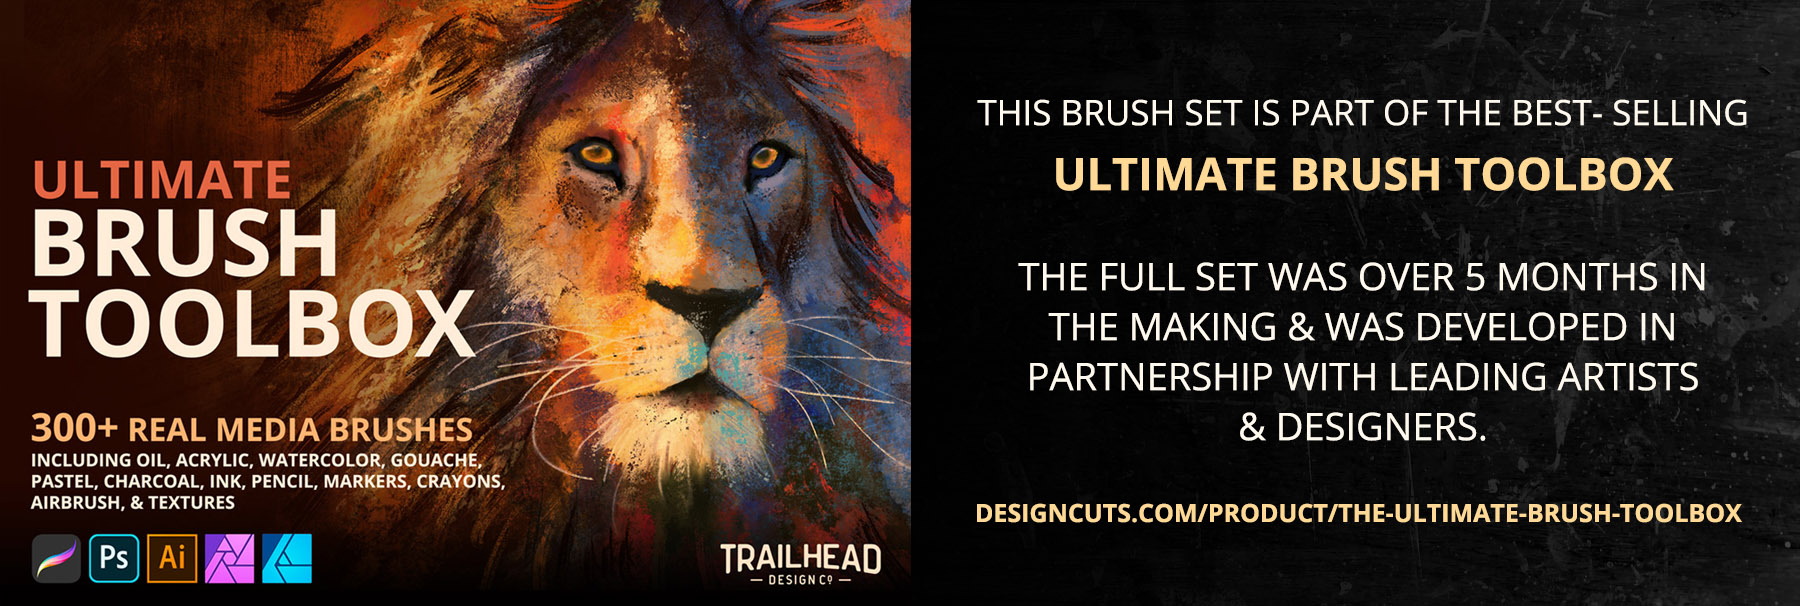 Ultimate Brush Toolbox - Oil Brushes